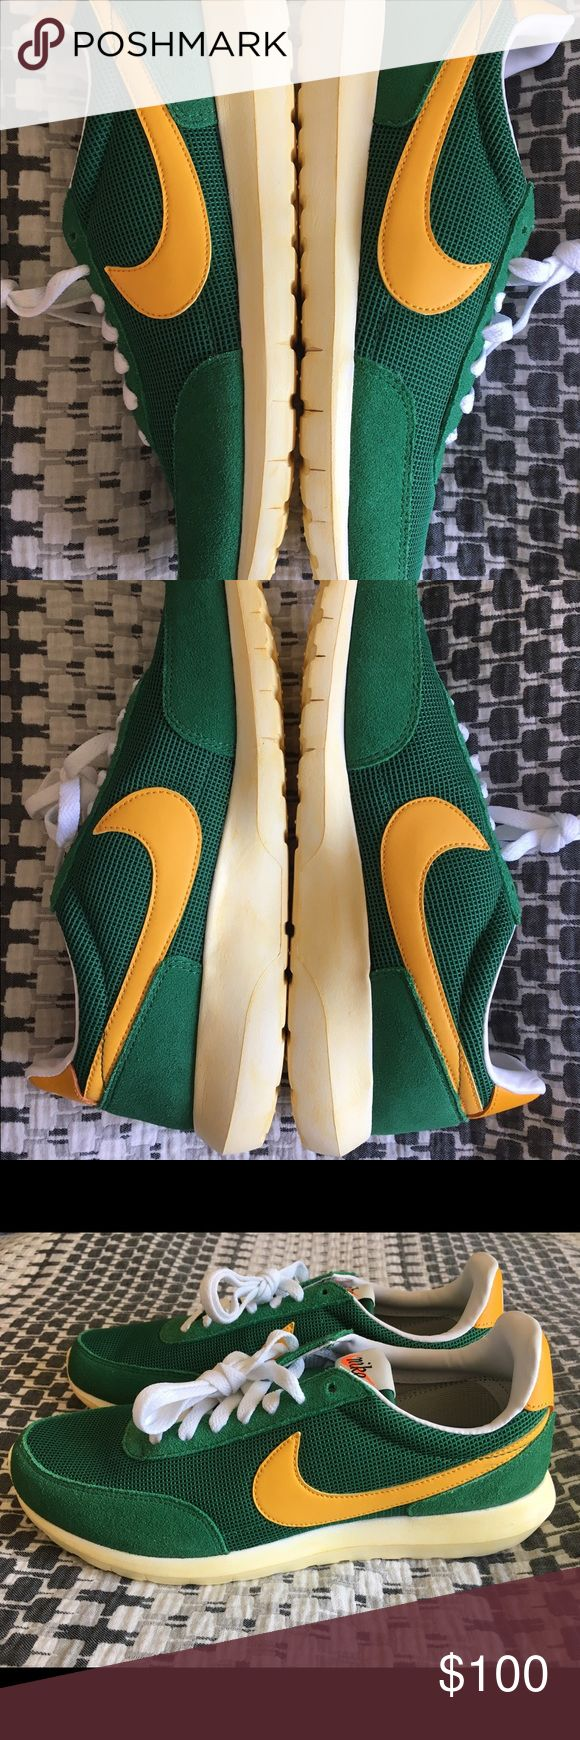 Nike Roshe DBREAK NM green/yellow size 9.5 New men's Nike Roshe DBREAK NM size 9.5 pine green/yellow/white comes with two shoelaces, green and white. I have original box but I don't have the top/cover to it. Original price $120 asking $100 or best offer. Nike Shoes Sneakers